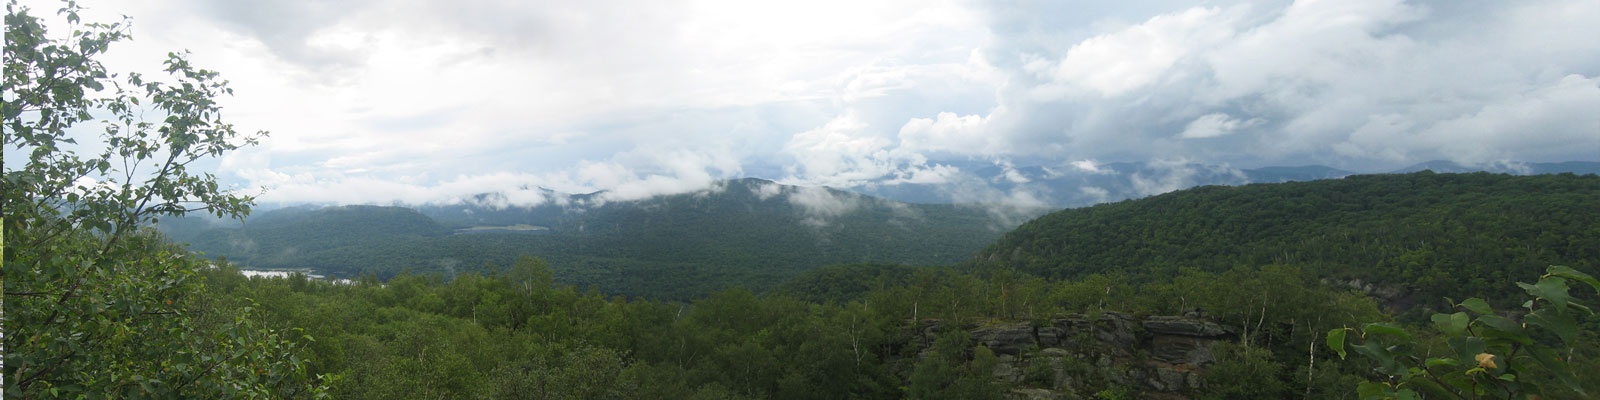 View of Central Adirondack region from atop Chimney Mountain